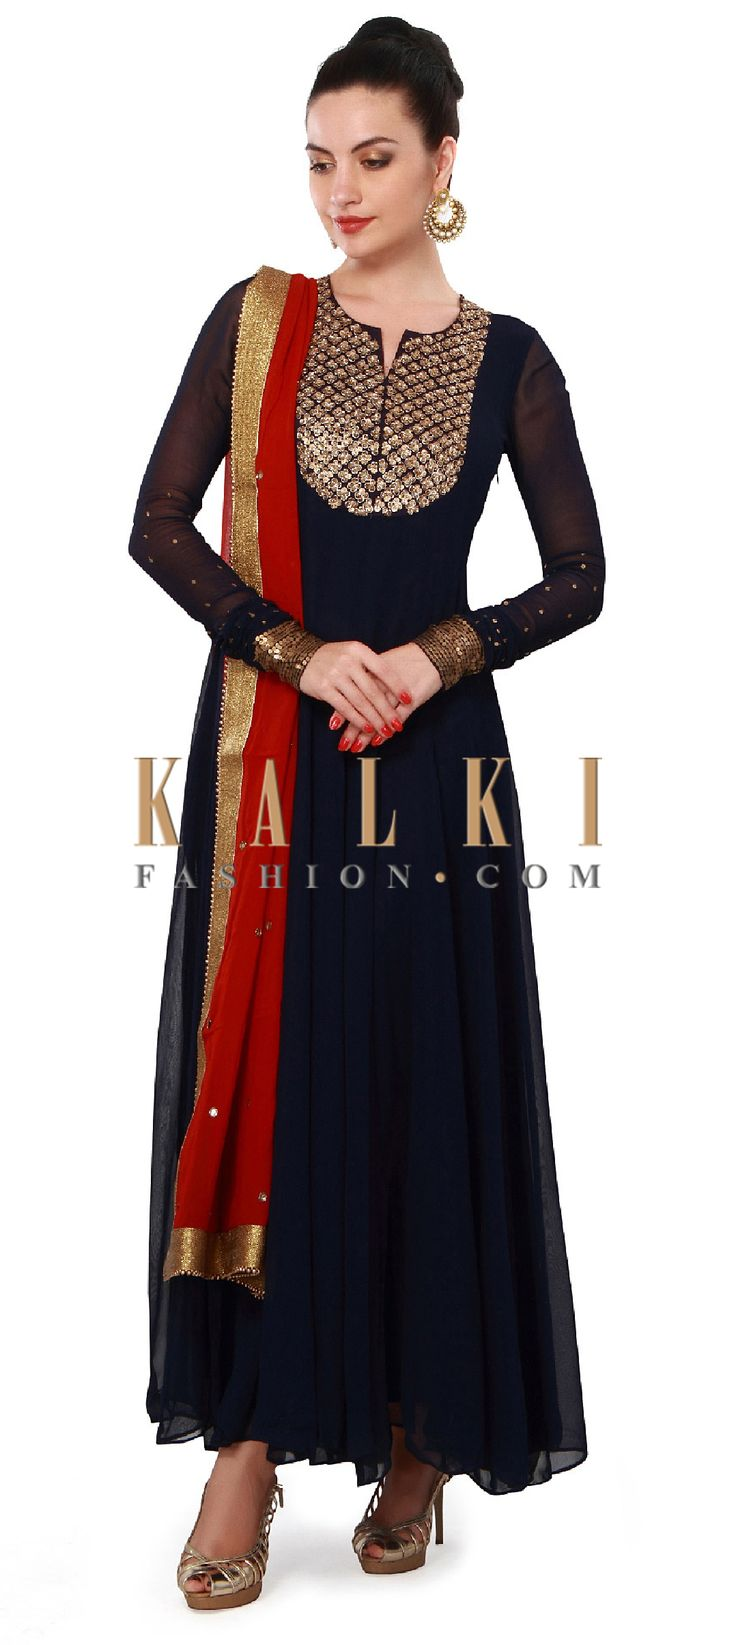 Buy Online from the link below. We ship worldwide (Free Shipping over US$100). Product SKU - 317321. Product Price - $199.00. Product link - http://www.kalkifashion.com/navy-blue-anarkali-suit-features-with-embellished-neckline-only-on-kalki.html